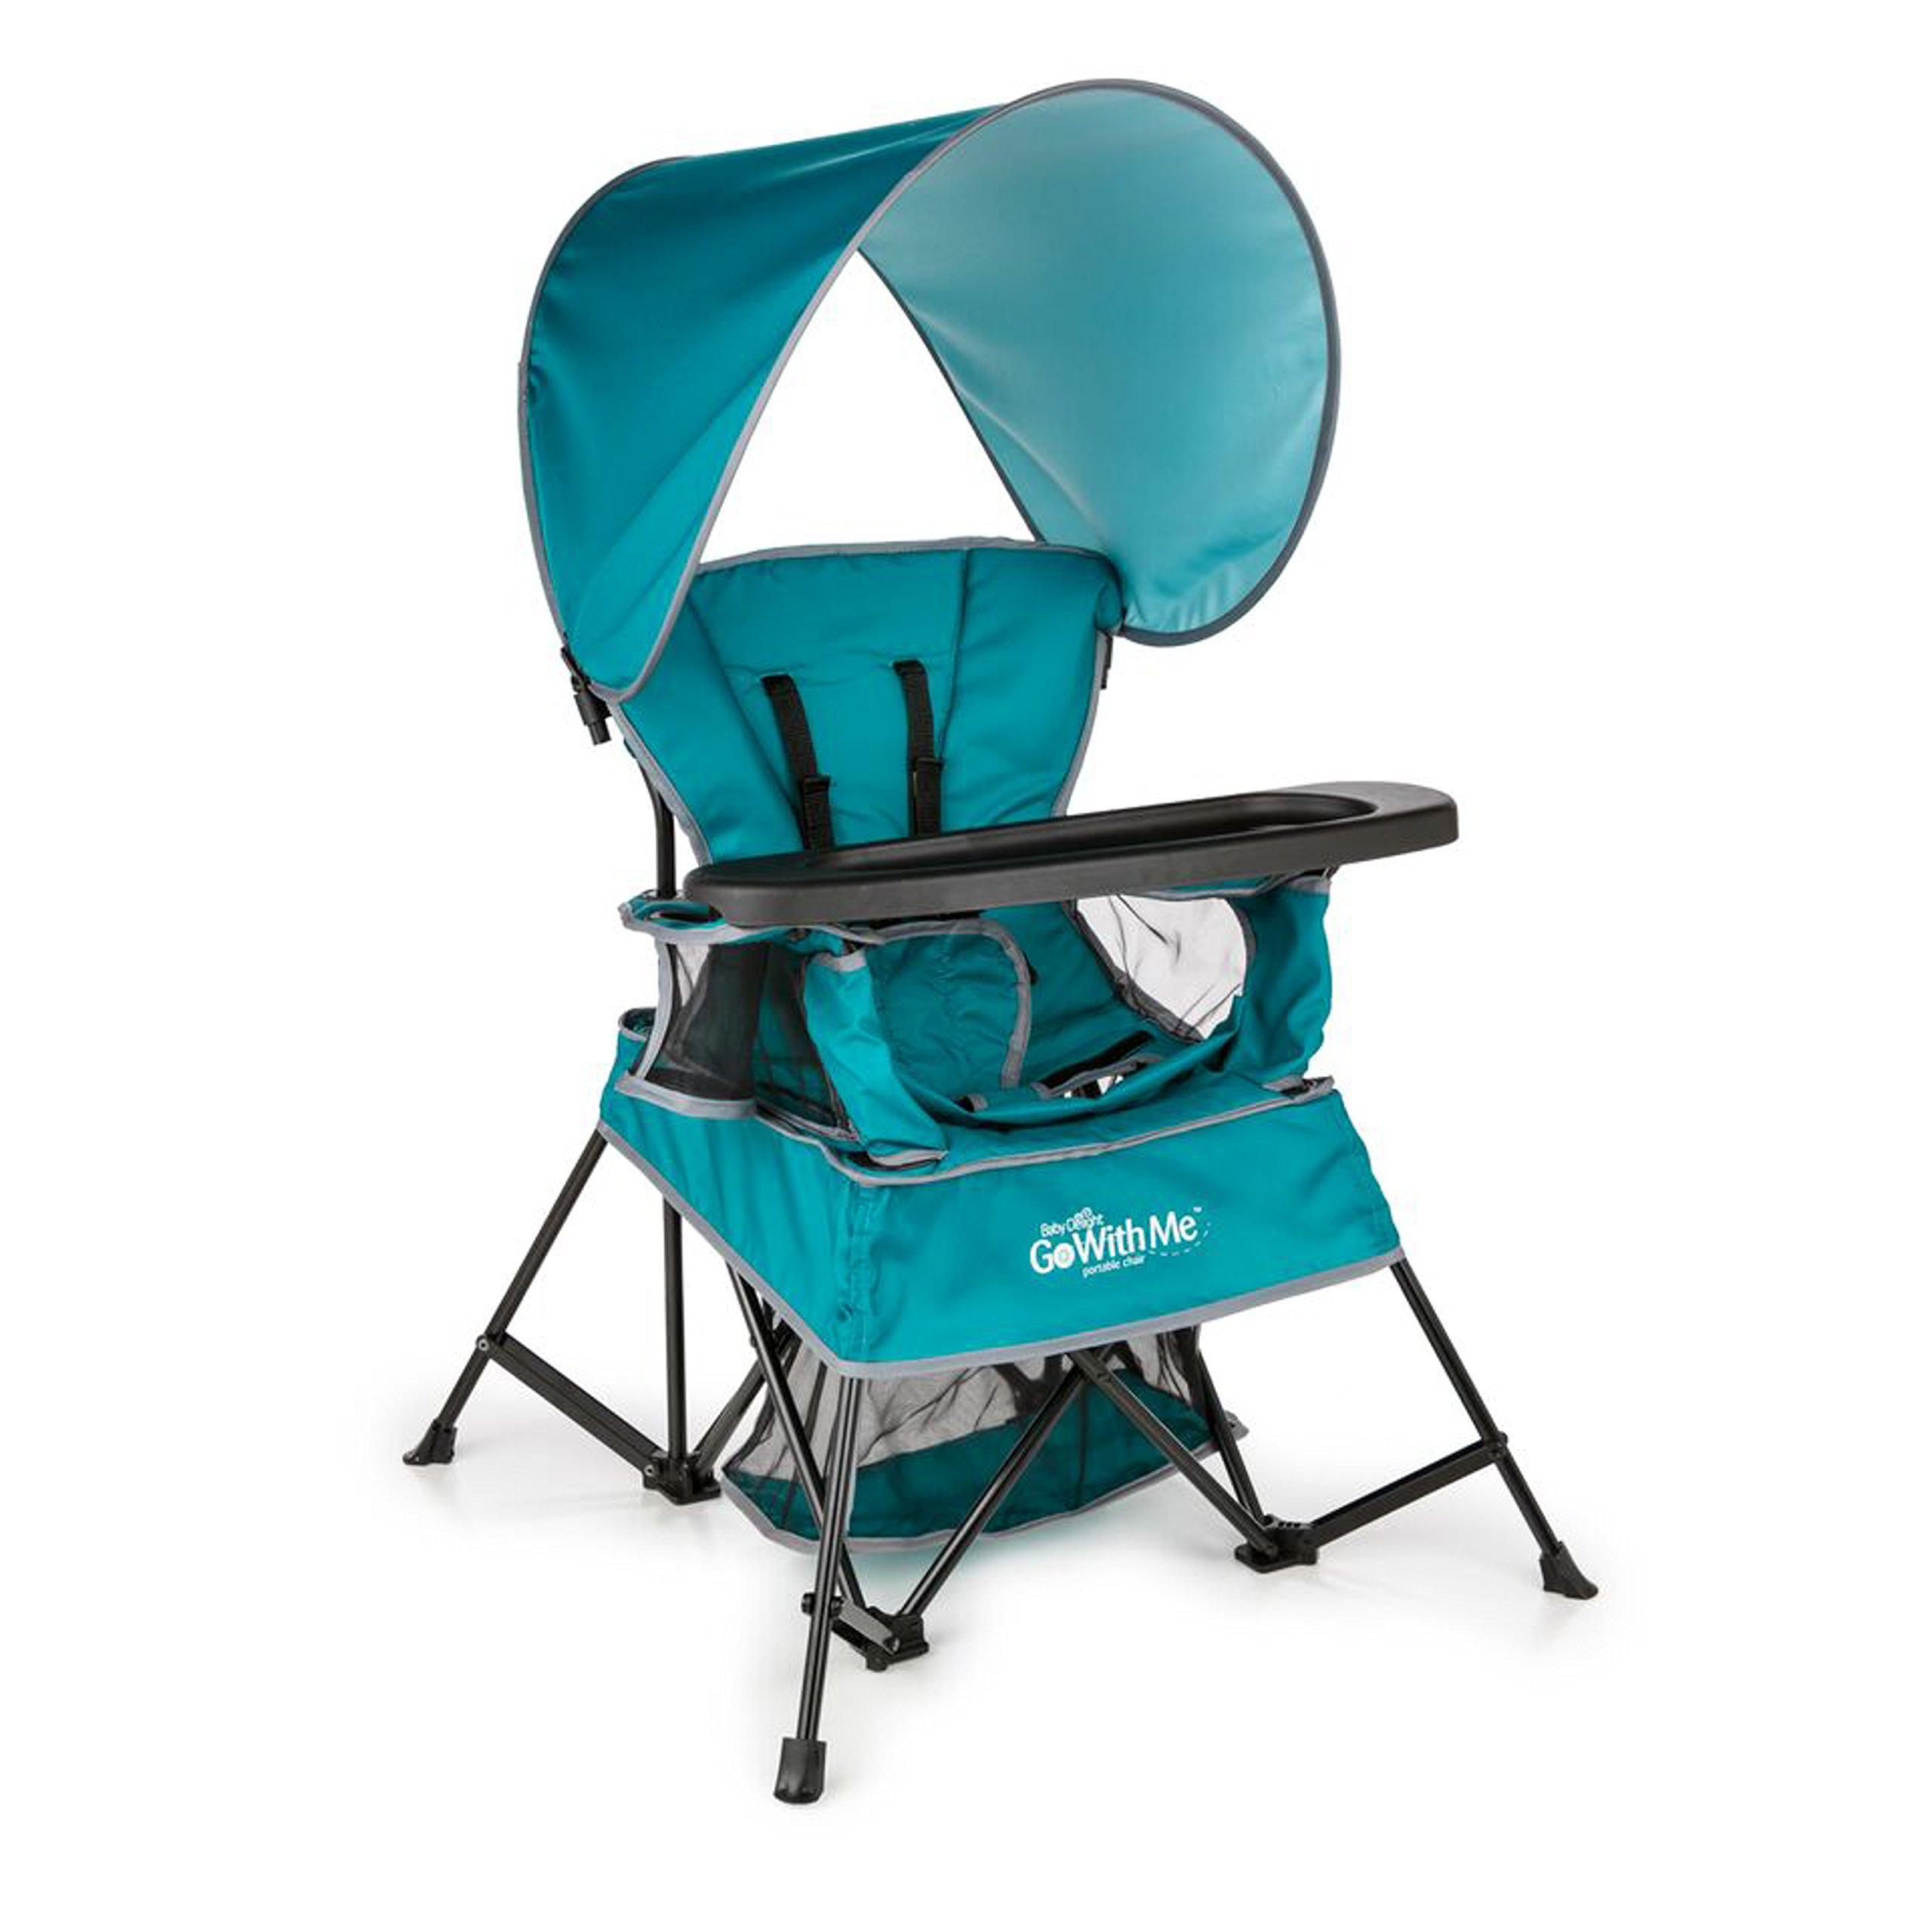 Baby Delight Go with Me Chair | Indoor/Outdoor Chair with Sun Canopy | Teal | Portable Chair converts to 3 Child Growth Stages: Sitting, Standing and Big Kid | 3 Months to 75 lbs | Weather Resistant by Baby Delight